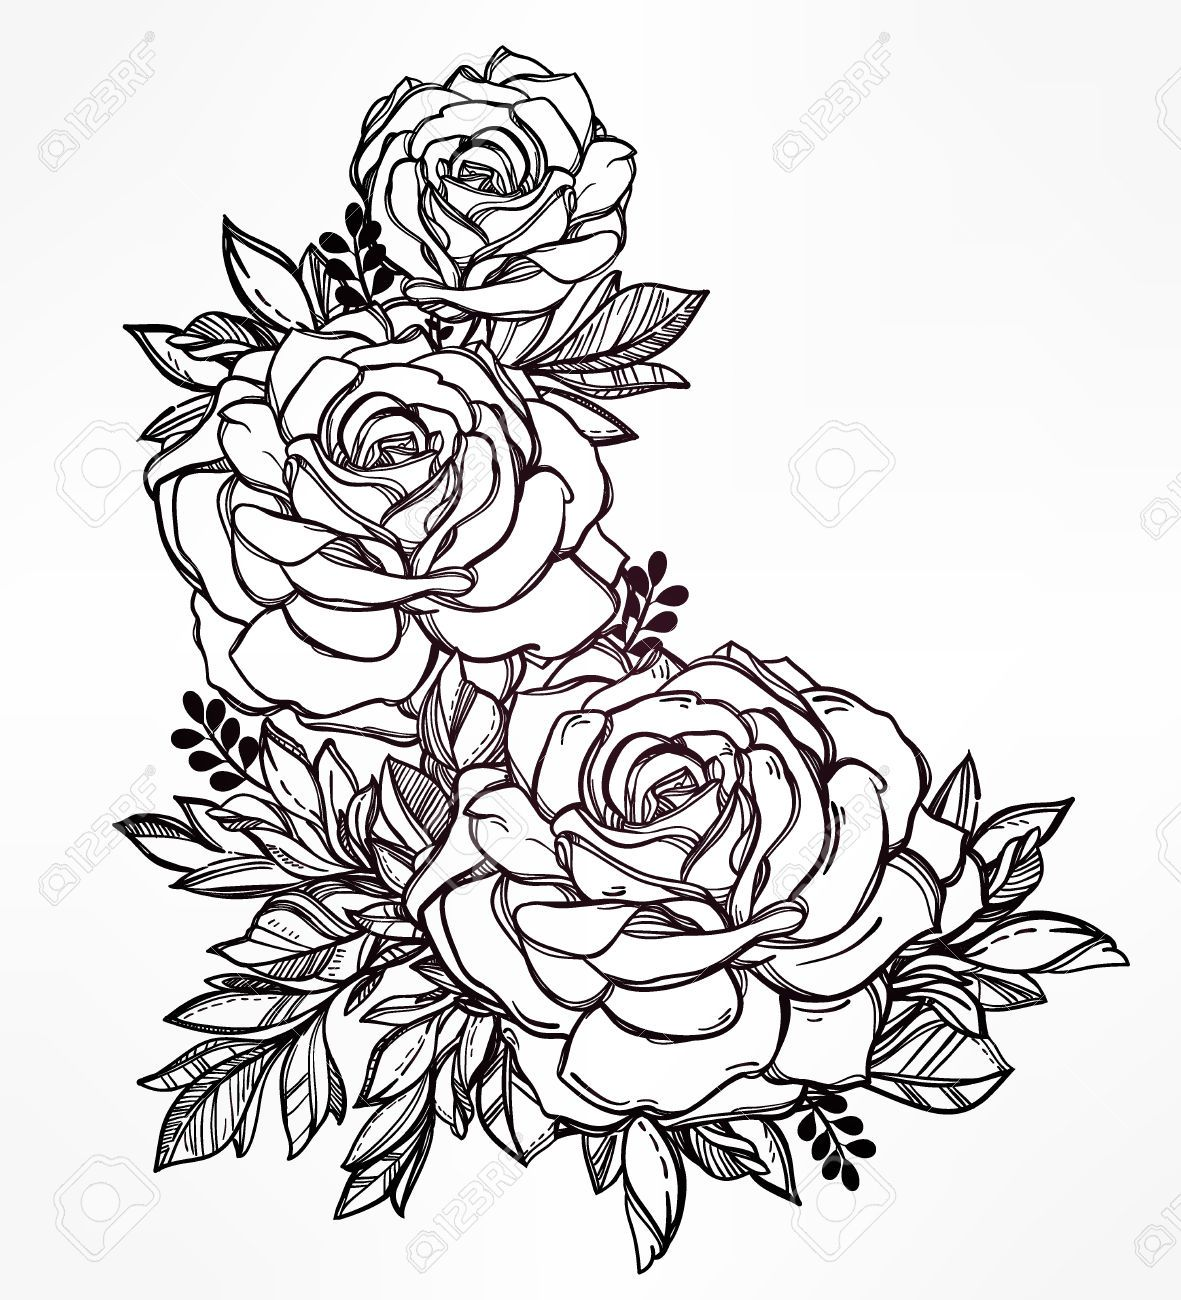 Line Art Tattoo Artists Near Me : Vintage floral highly detailed hand drawn rose flower stem